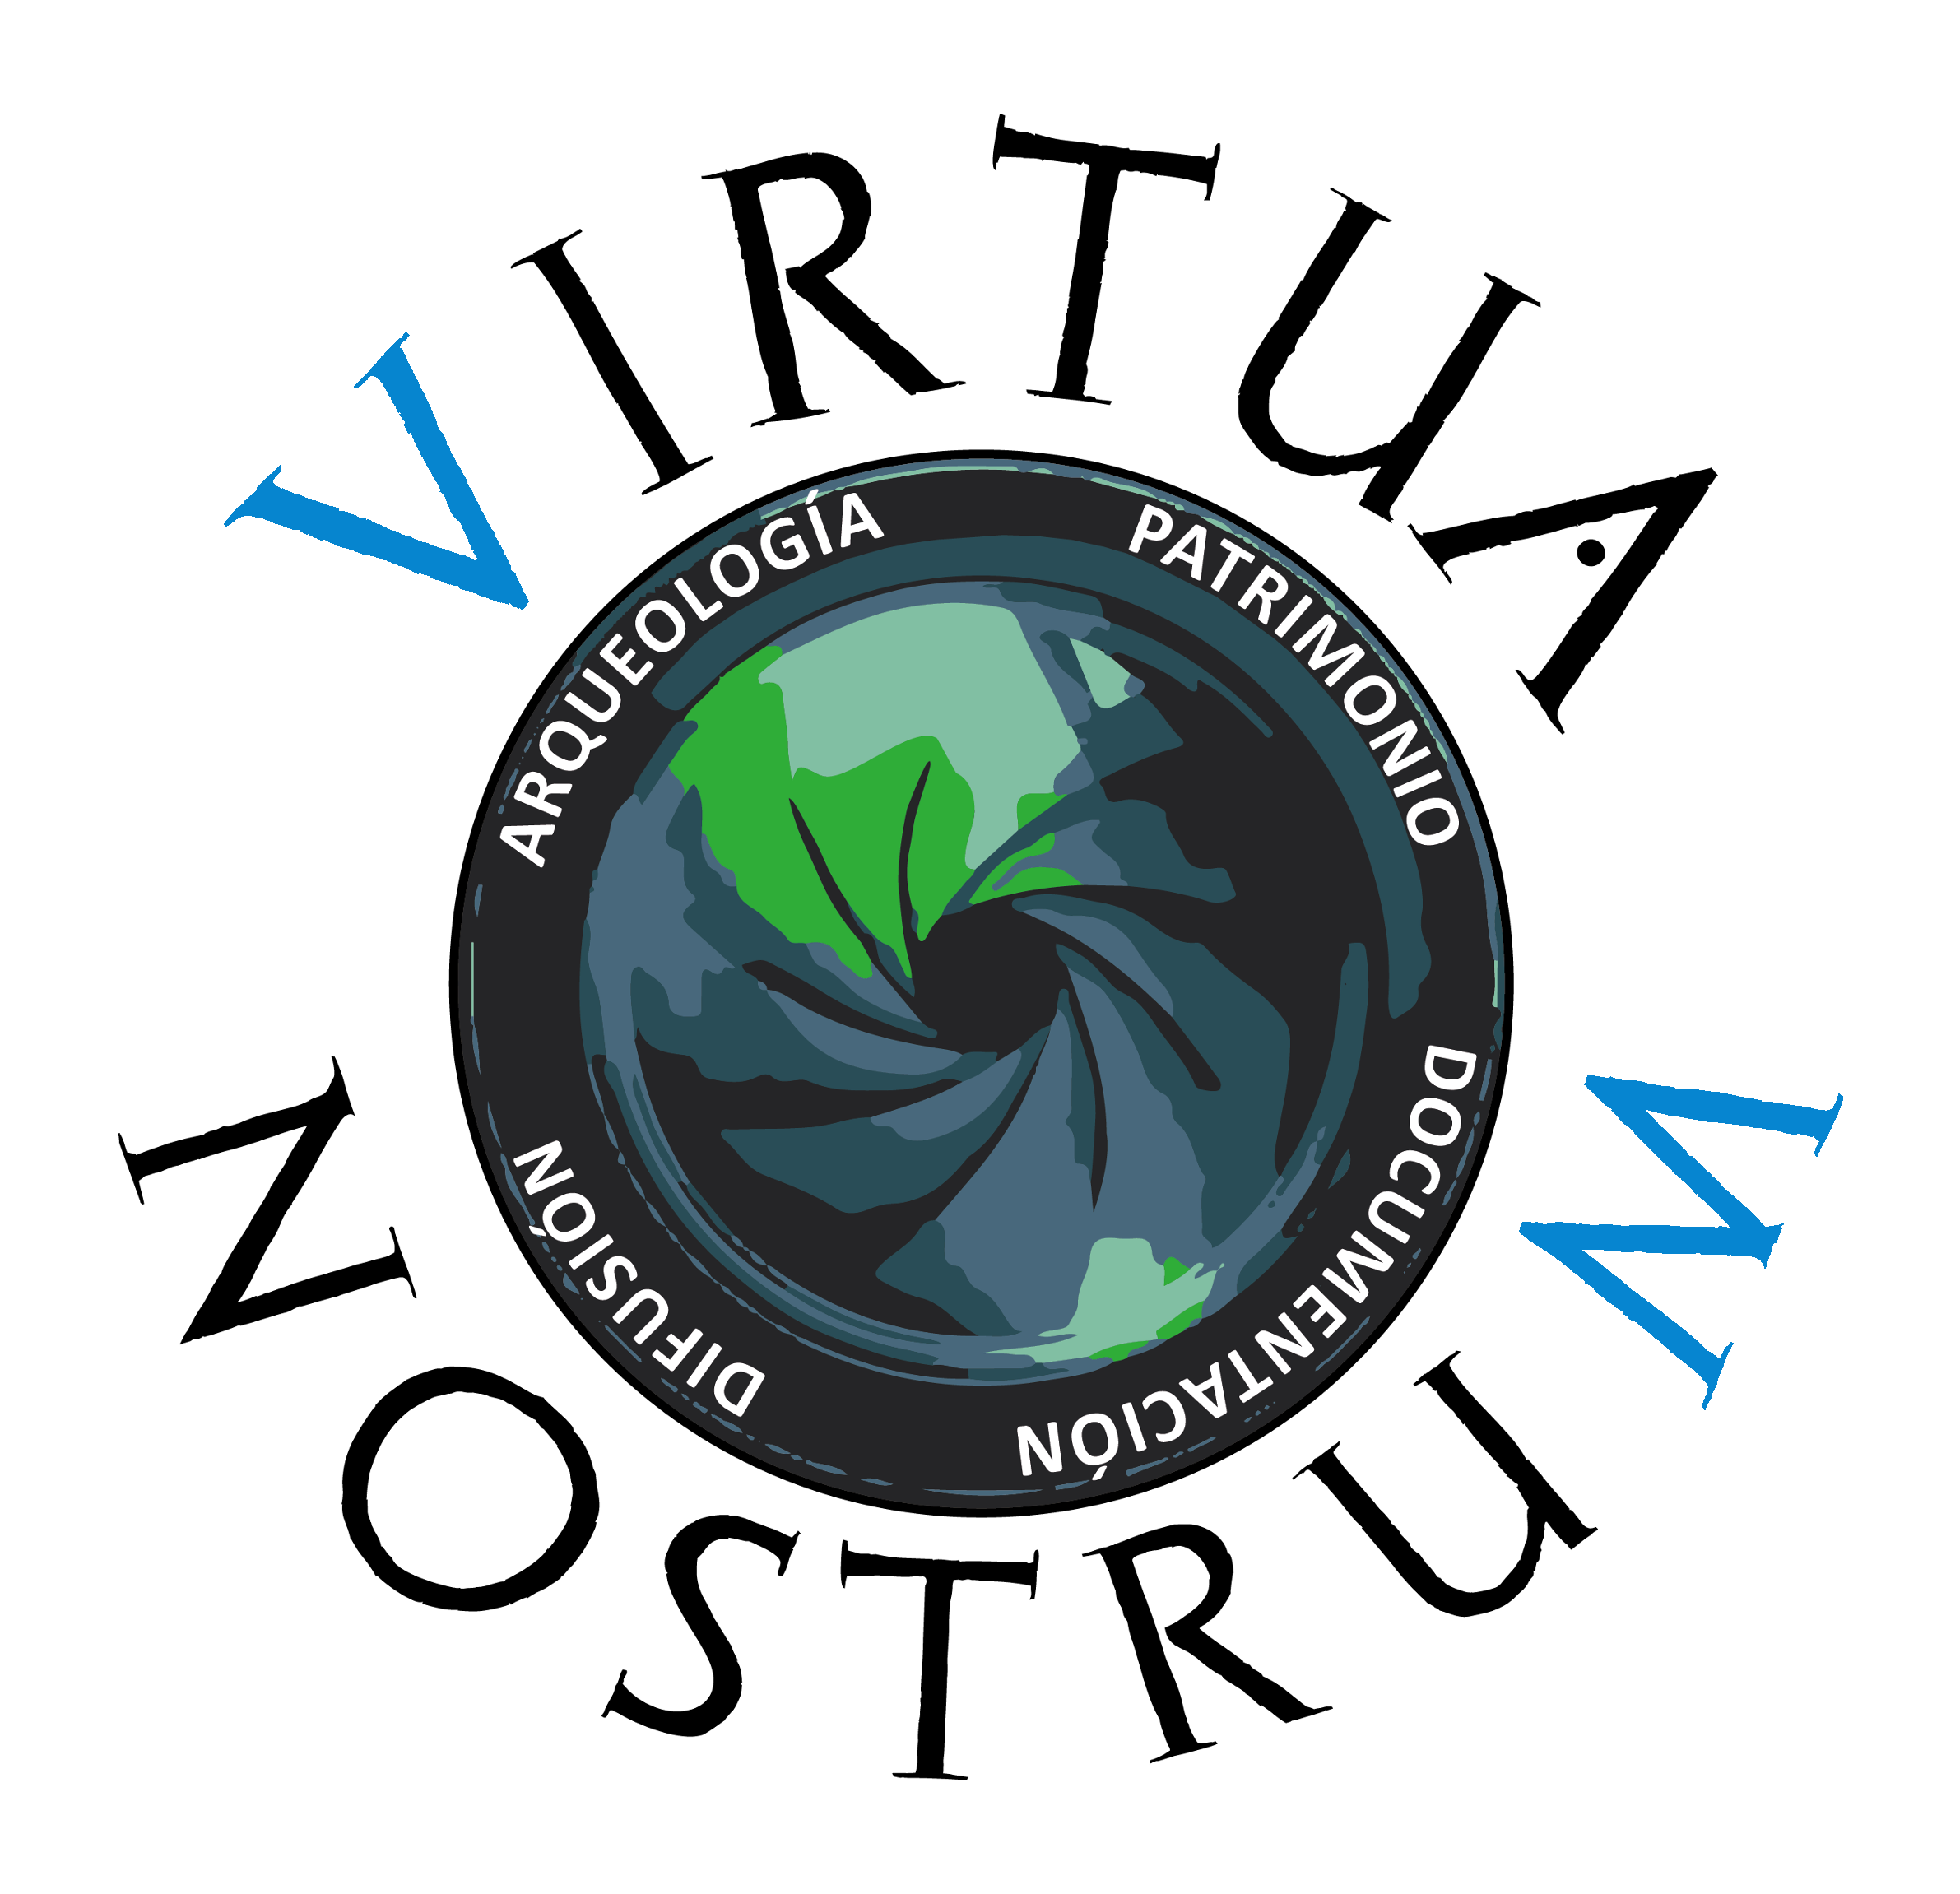 VIRTUANOSTRUM